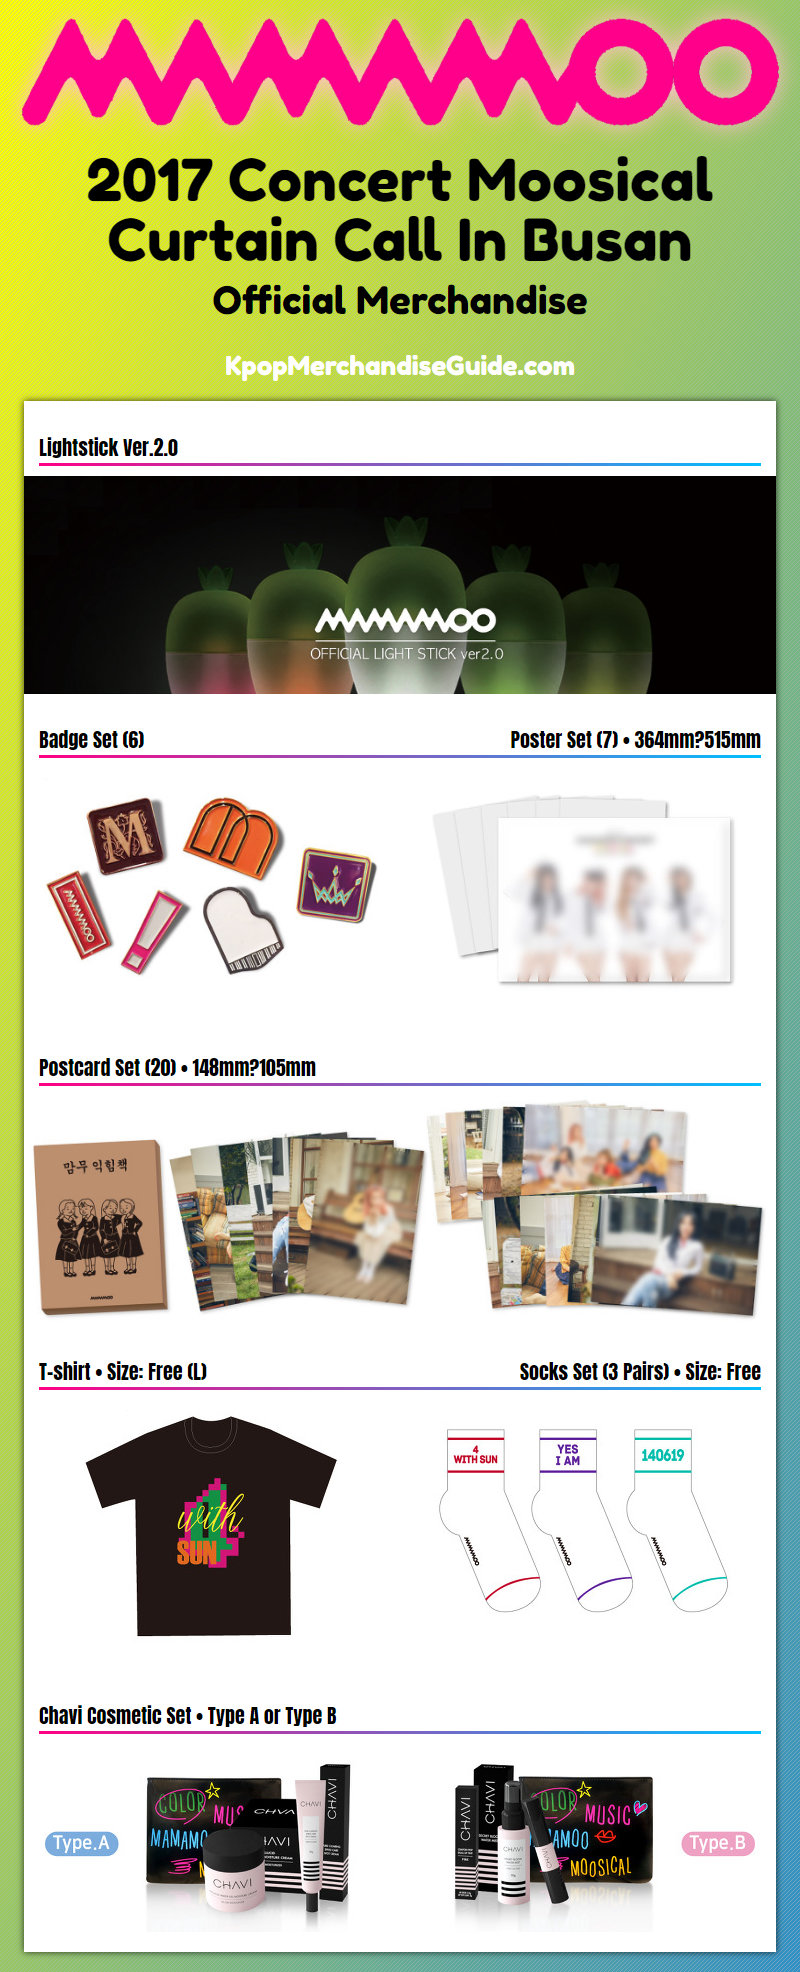 2017 Concert Moosical Curtain Call In Busan Merchandise